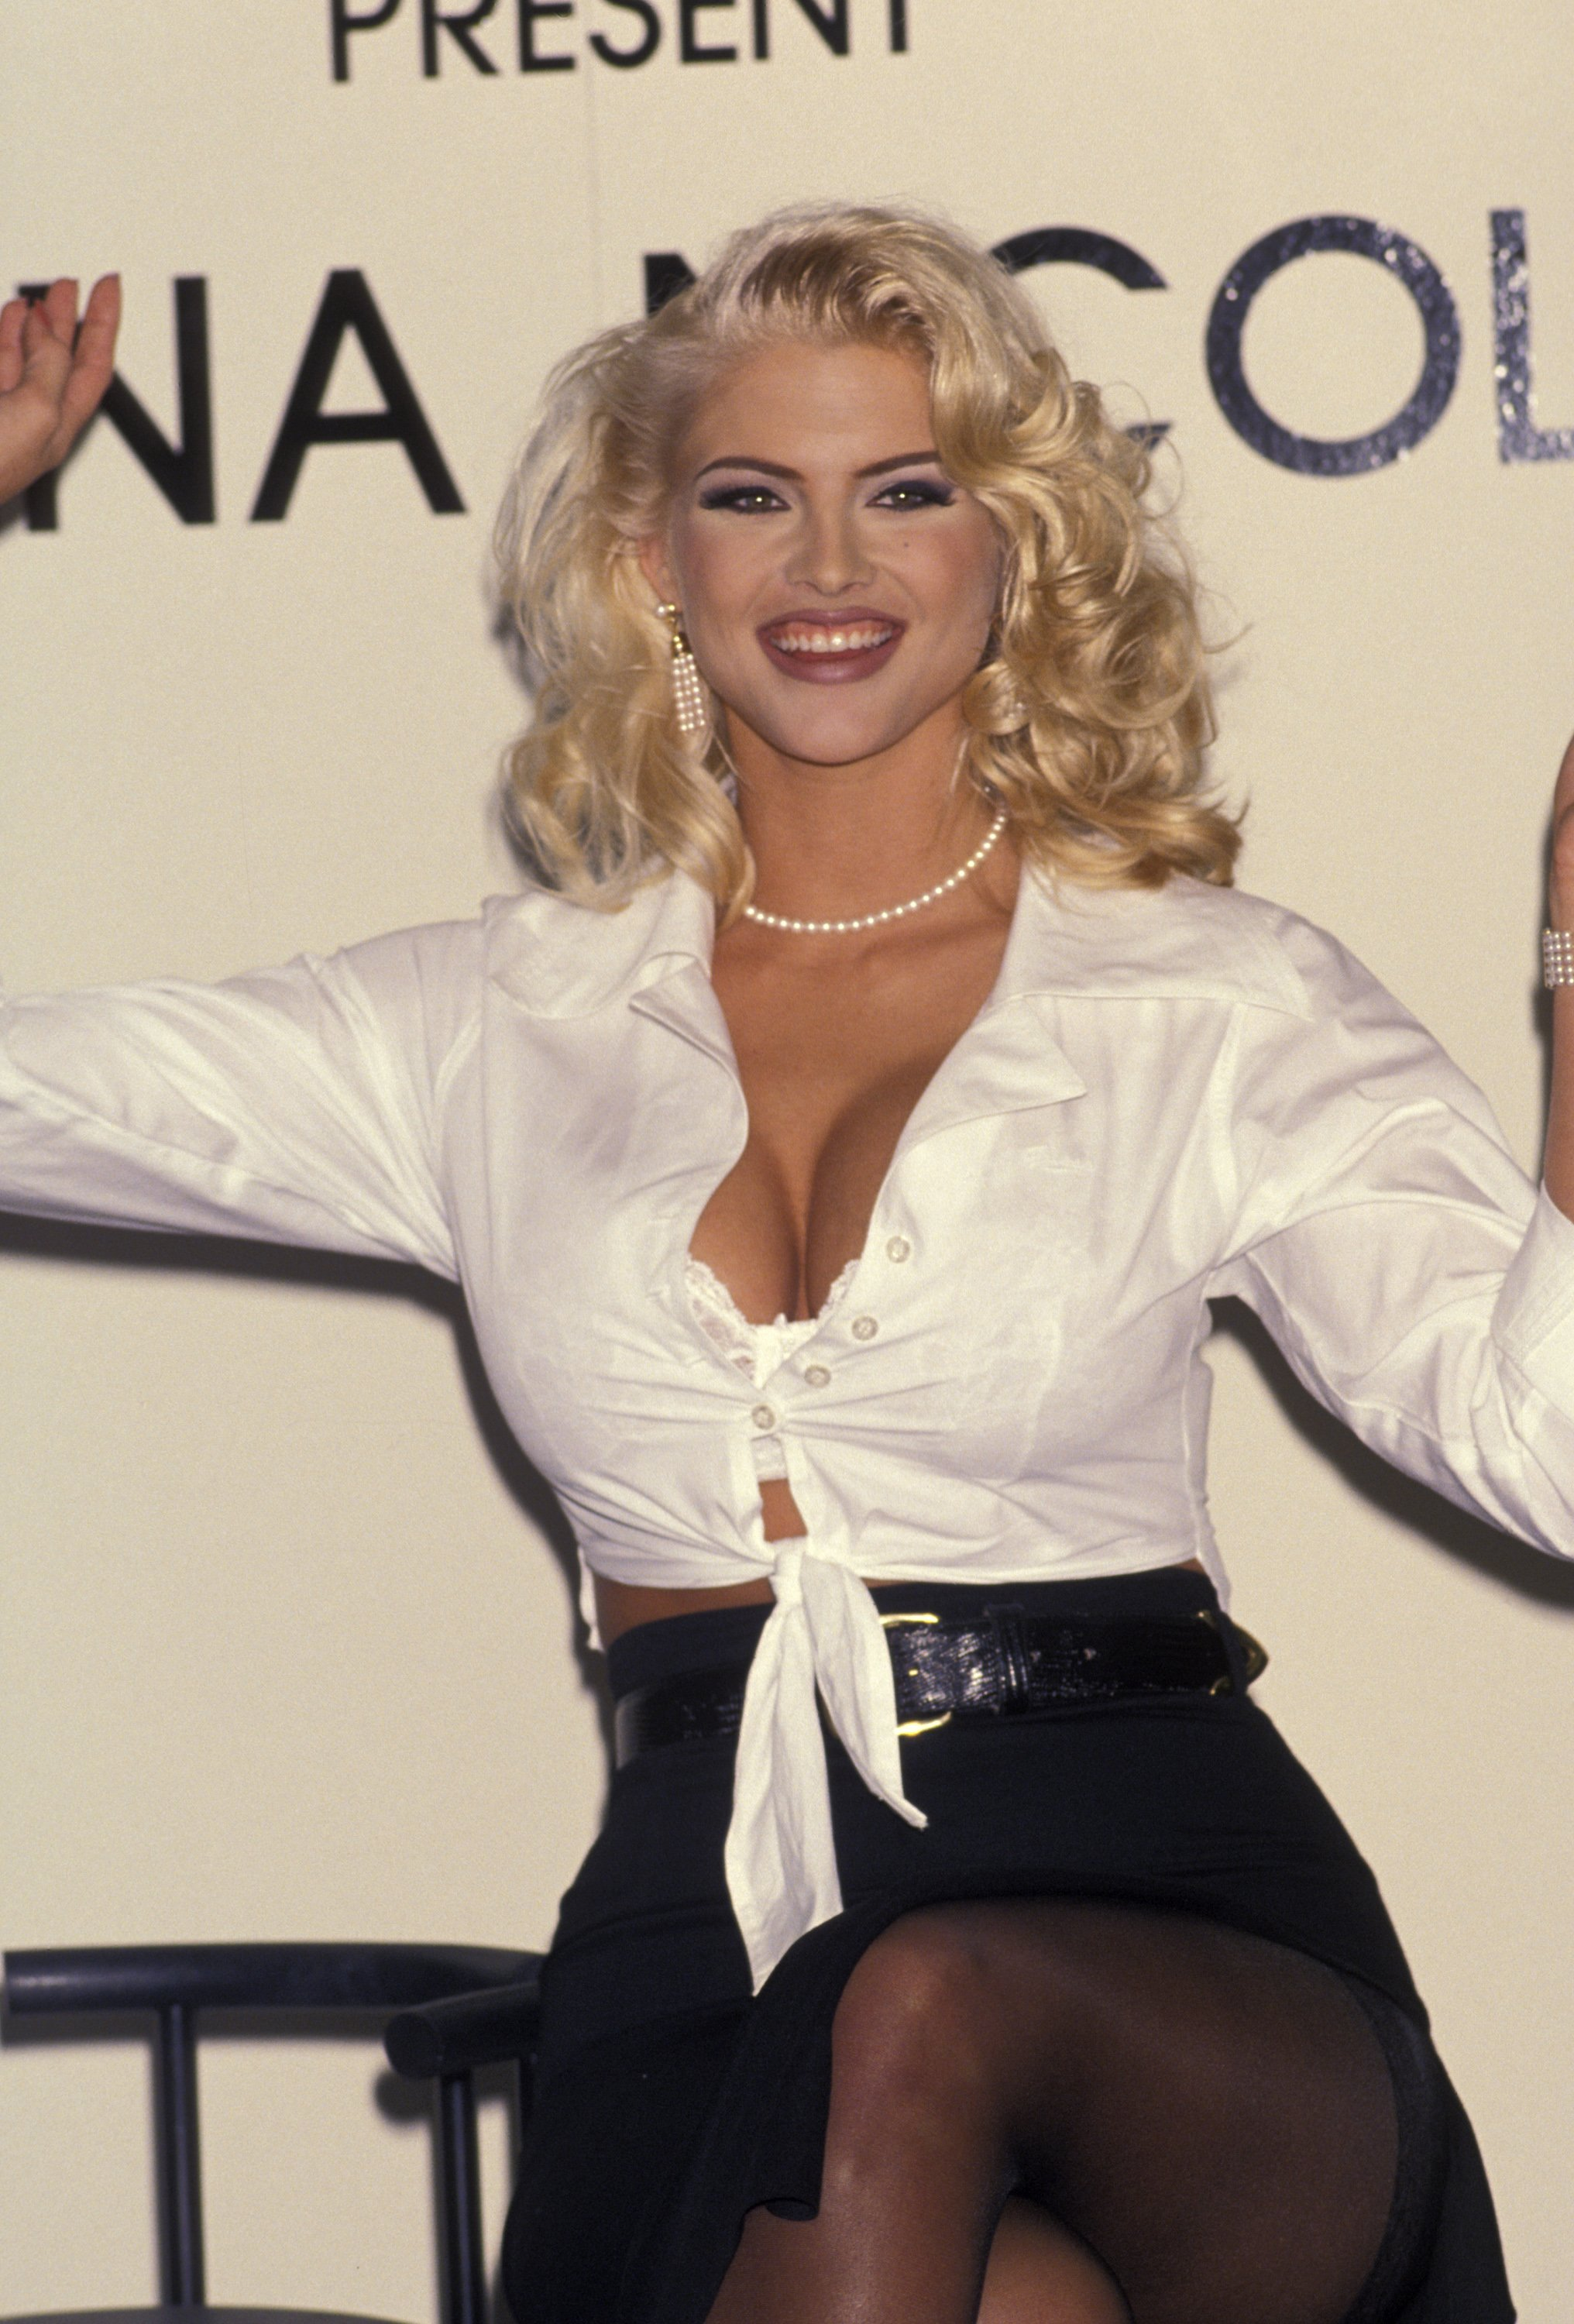 Anna Nicole Smith at the Bullock's Center as a special appearance for Guess sportwear in California in 1993   Photo: Getty Images